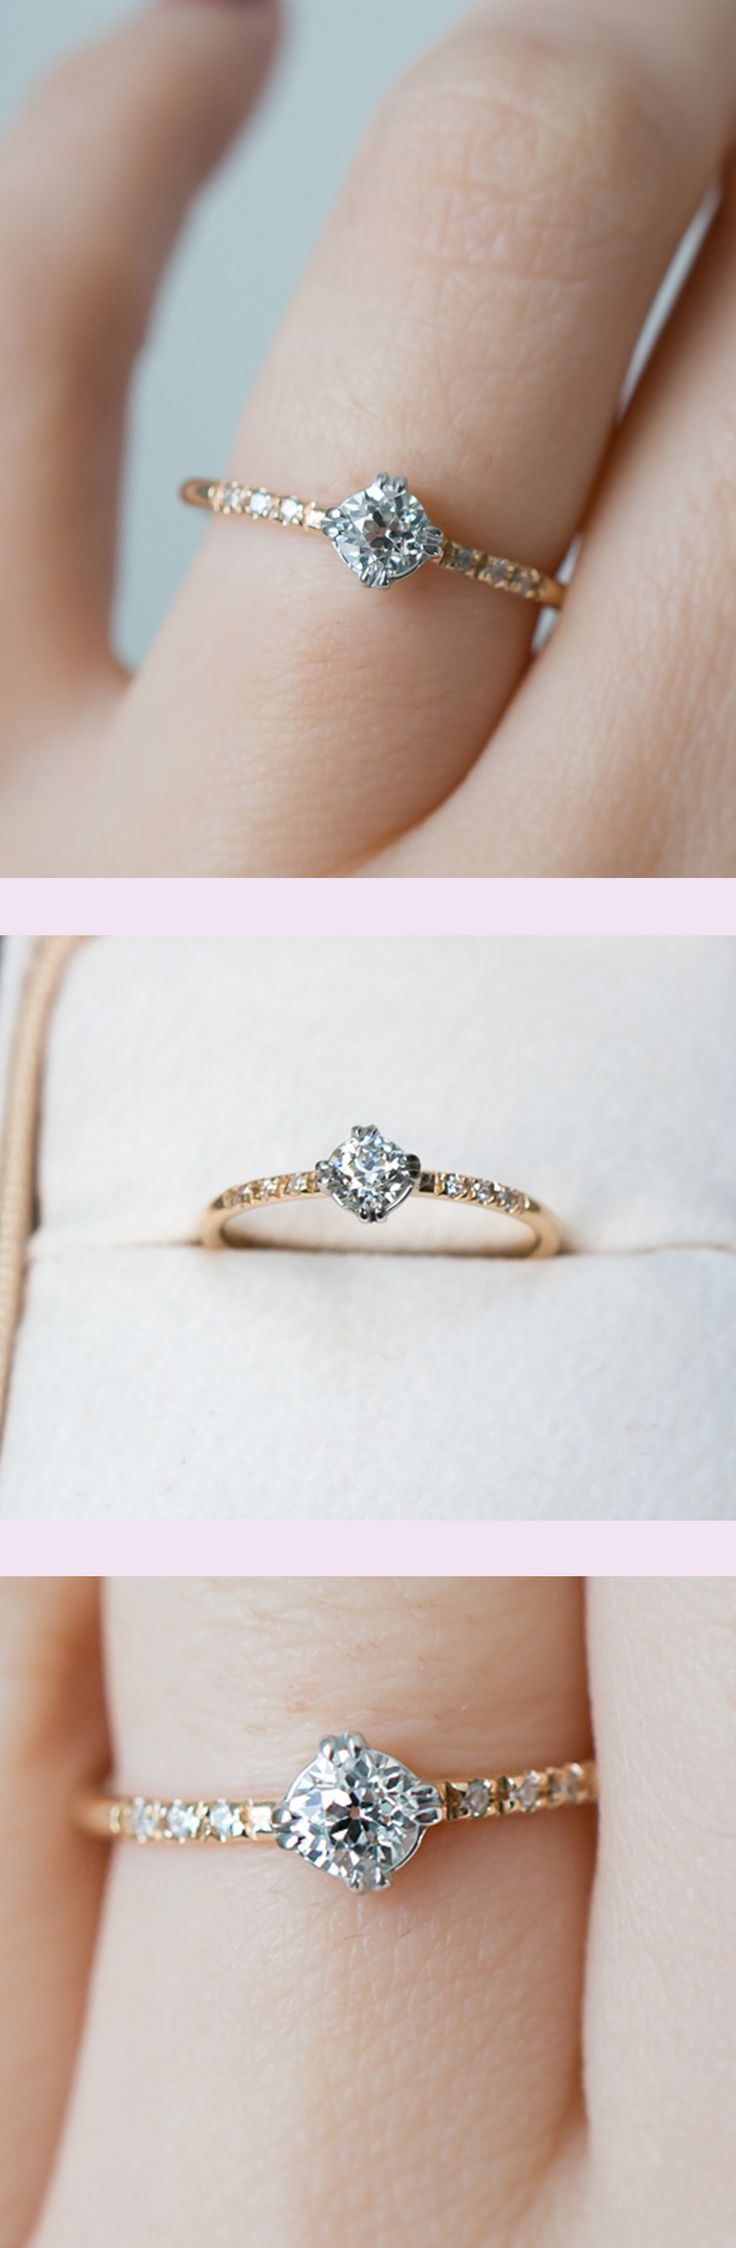 wedding rings simple simple wedding ring The sweetest vintage diamond engagement ring by S Kind